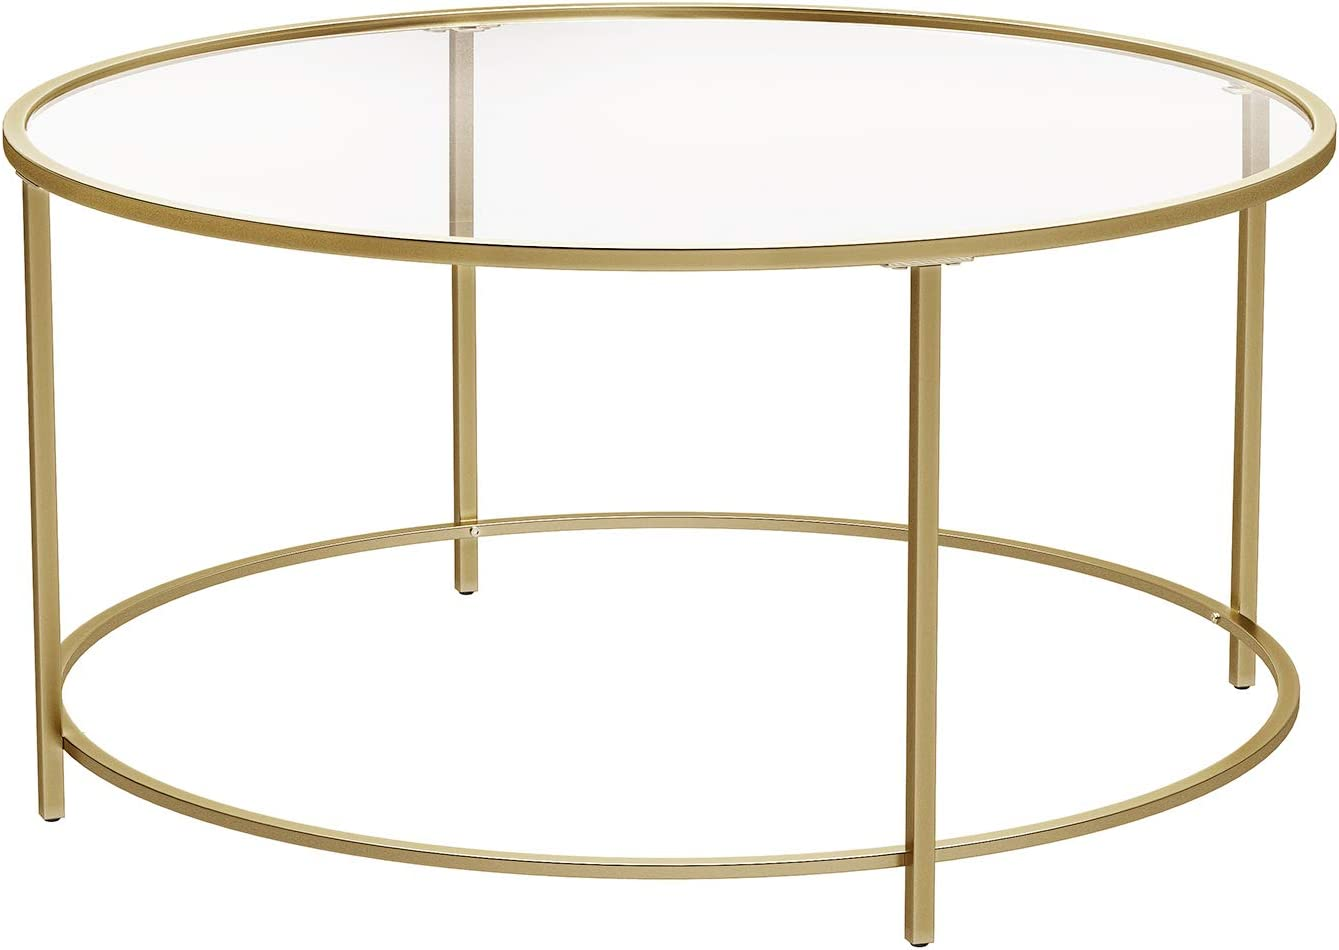 - Amazon.com: VASAGLE Round Coffee Table, Glass Table With Golden